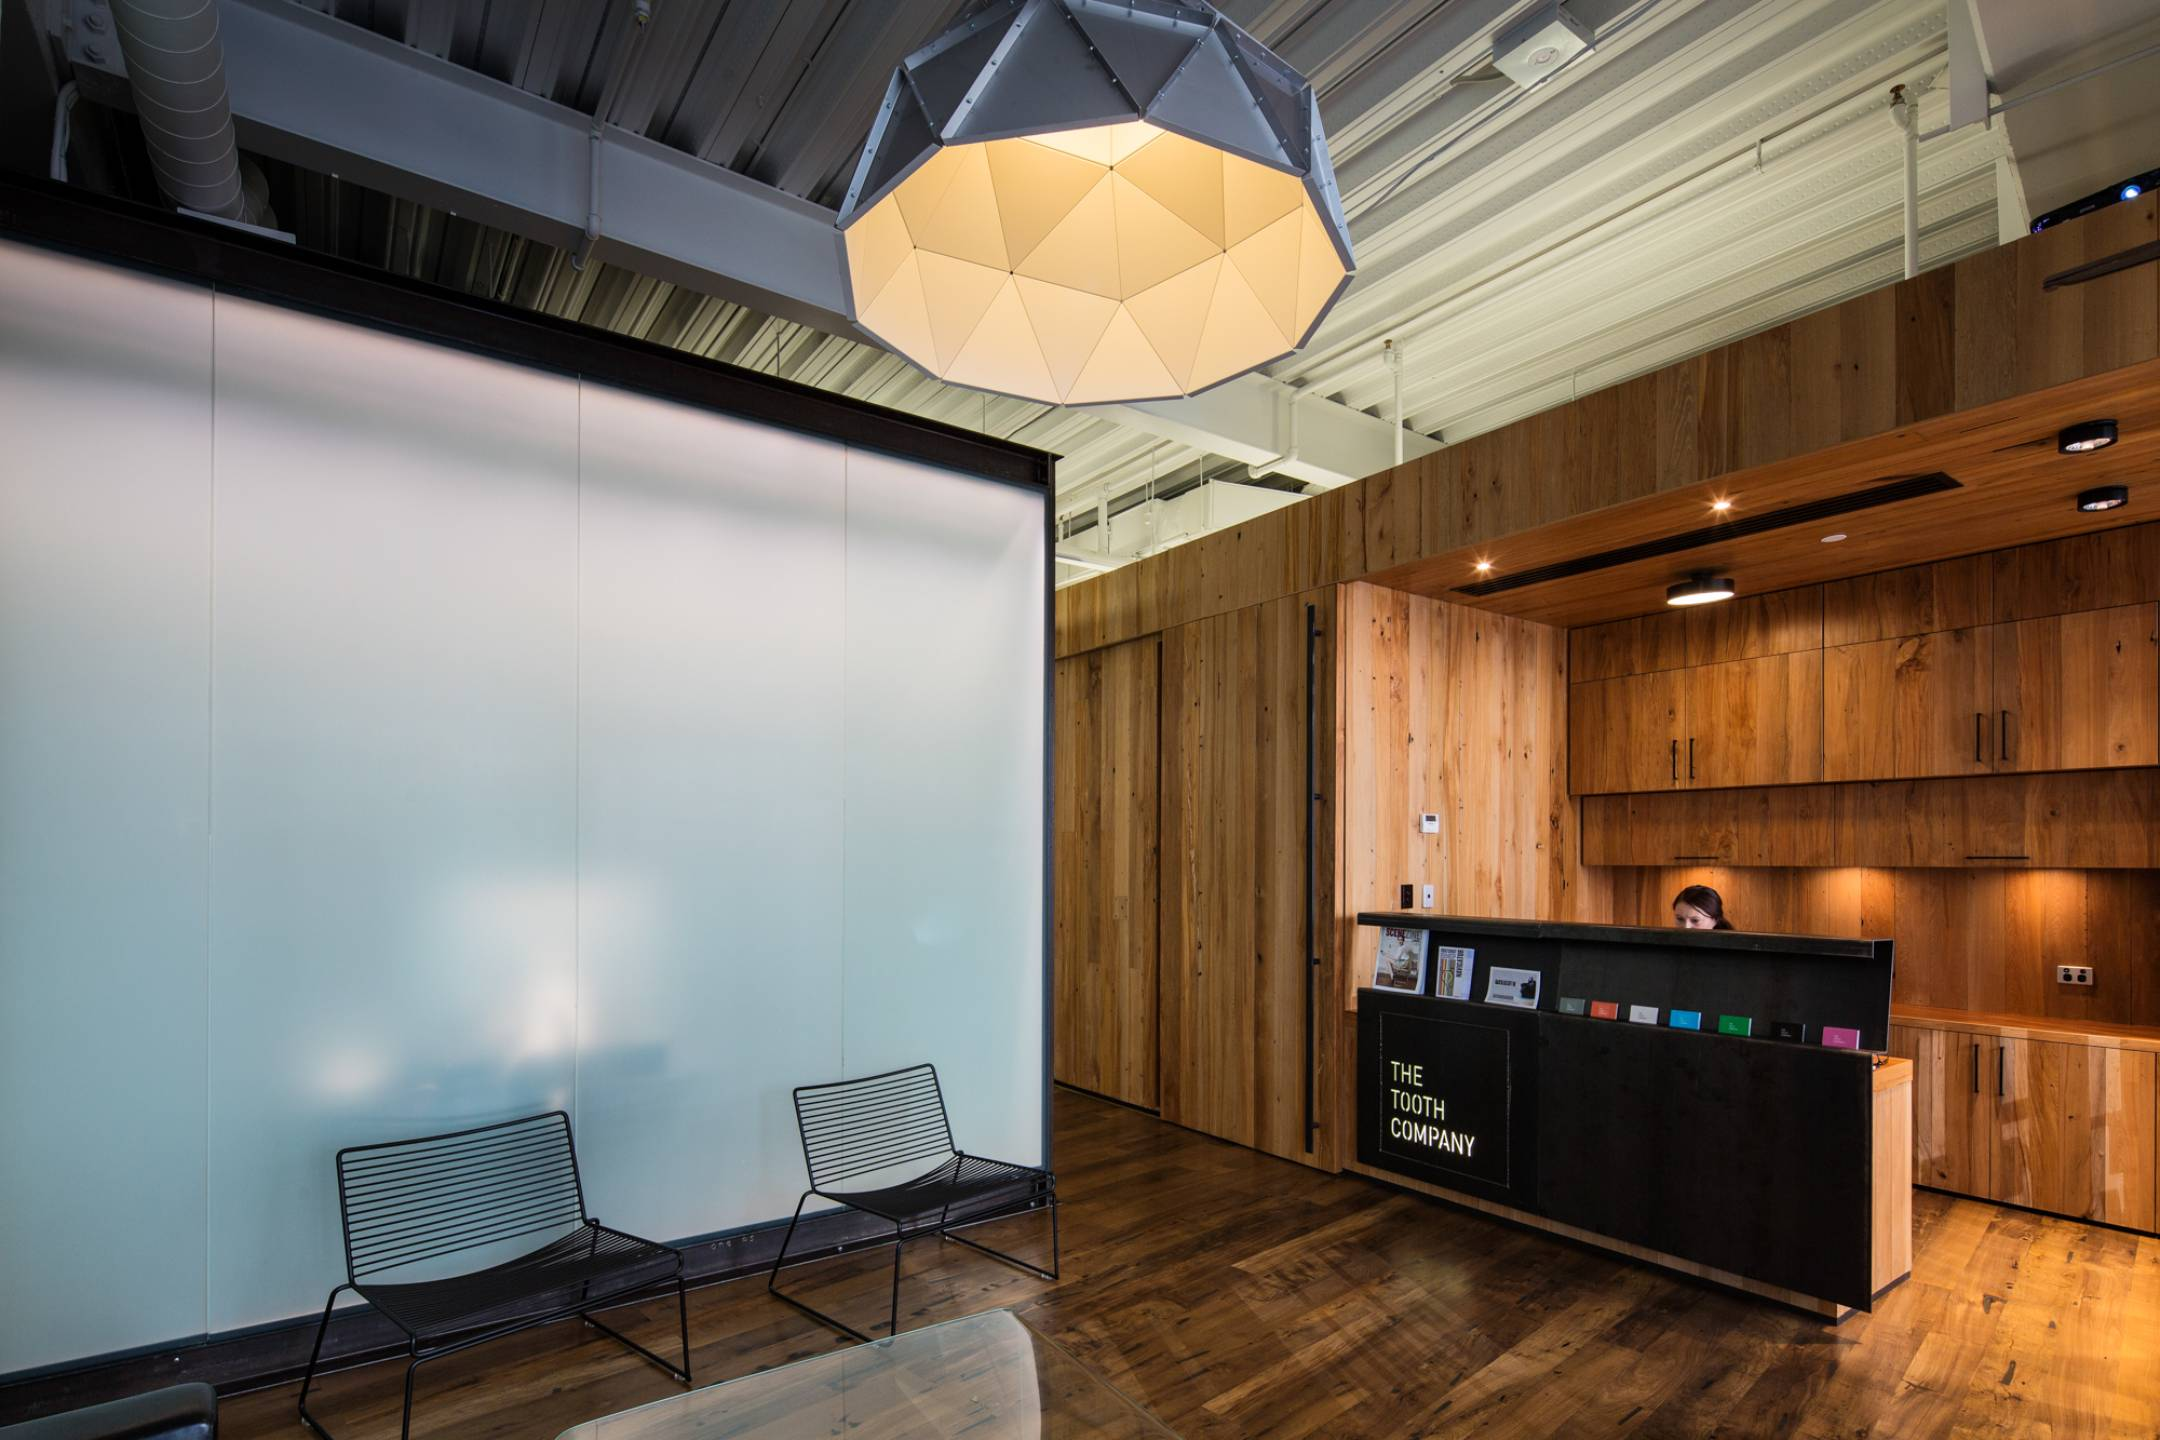 The Tooth Company by Herbst Maxcey Metropolitan Architects